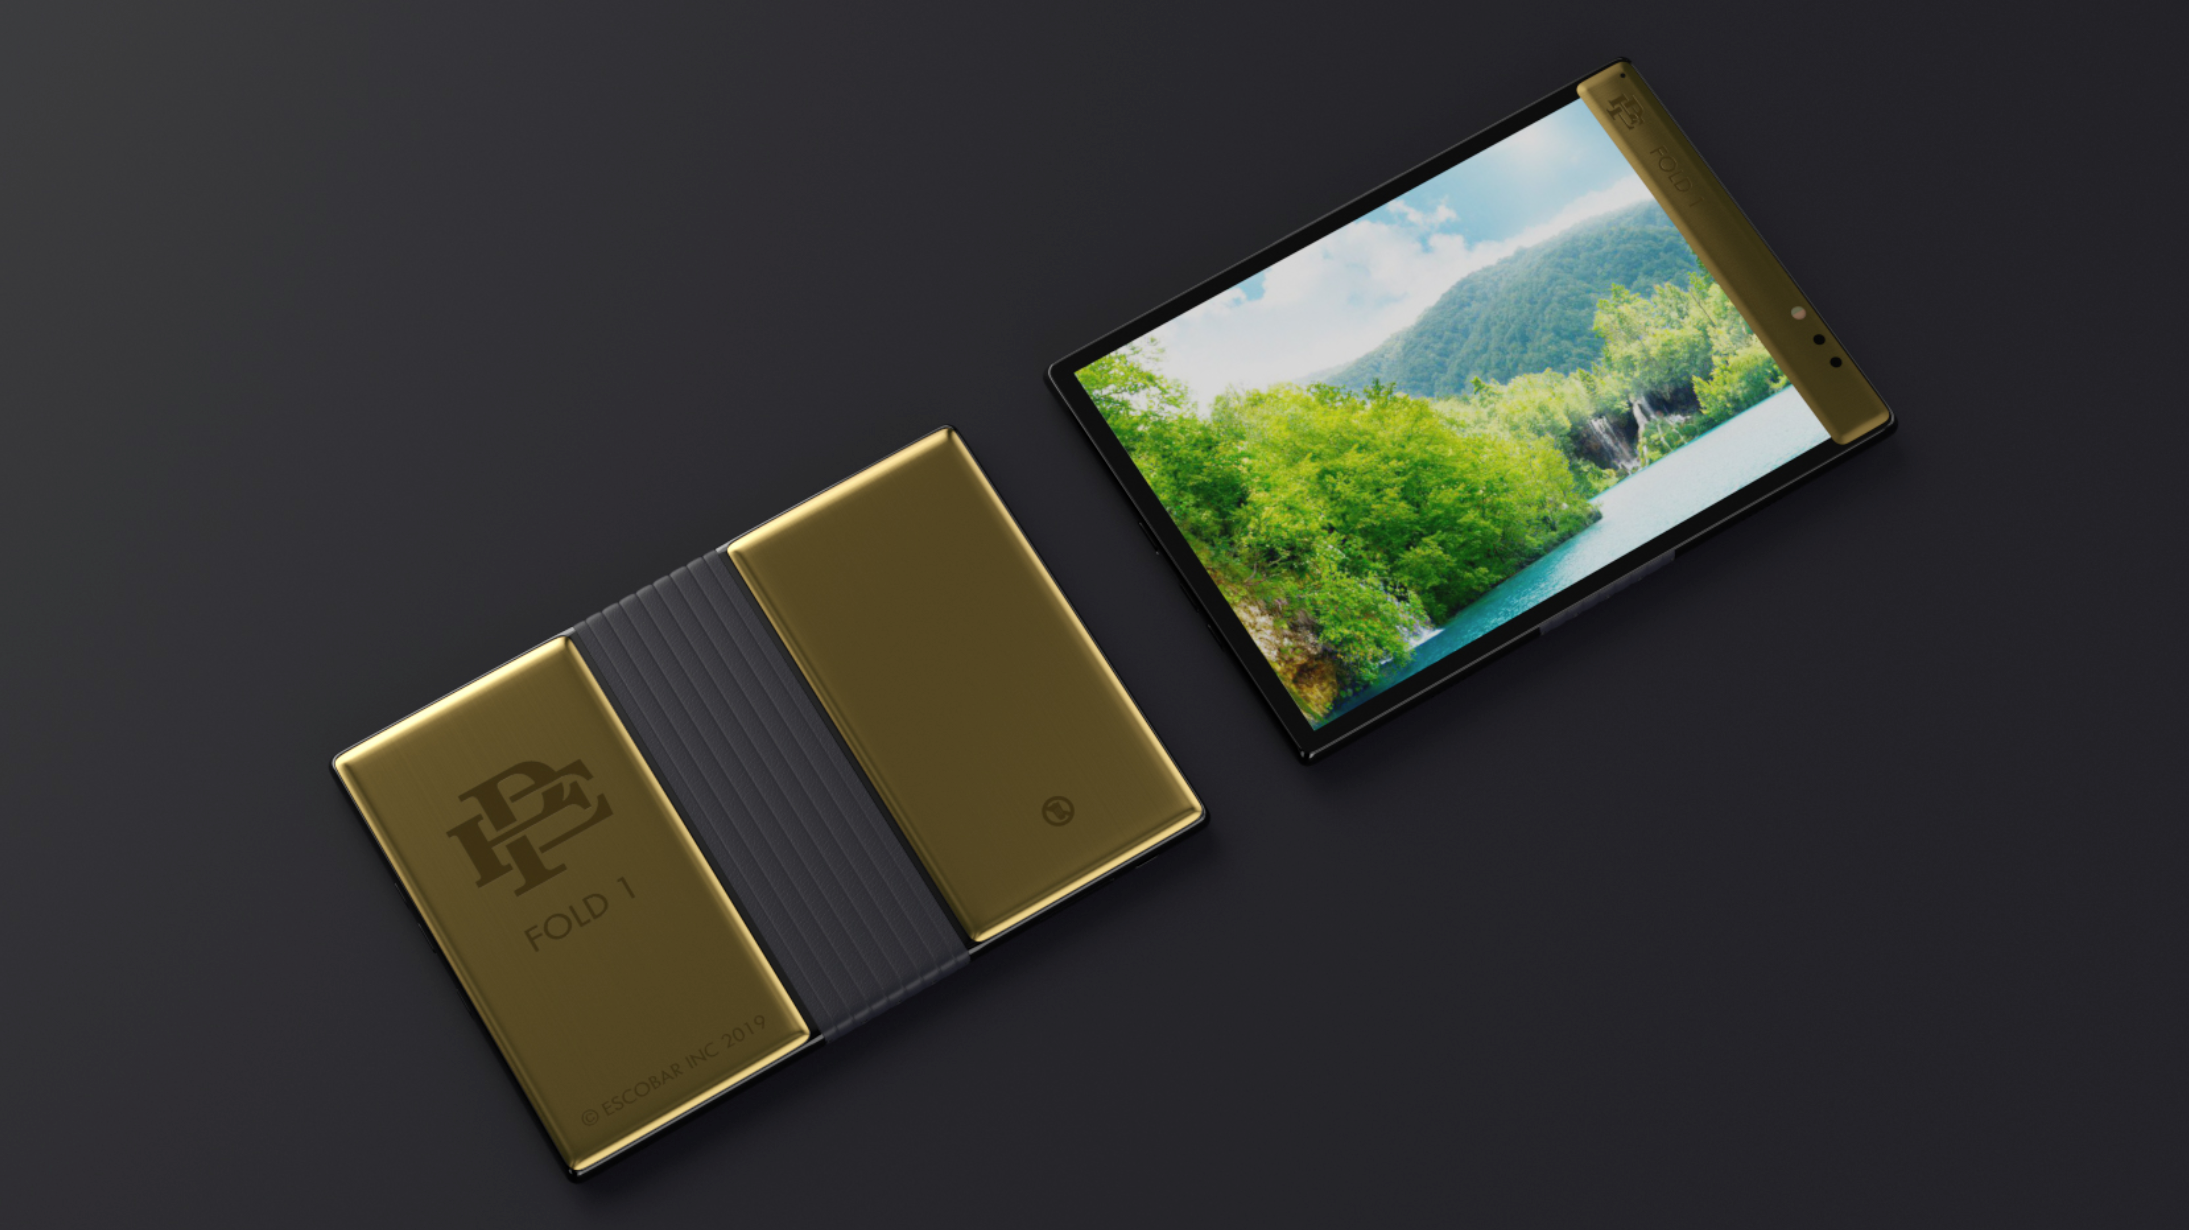 Pablo Escobar's Brother Has Apple In His Crosshairs With… An 'Unbreakable' Foldable Phone?